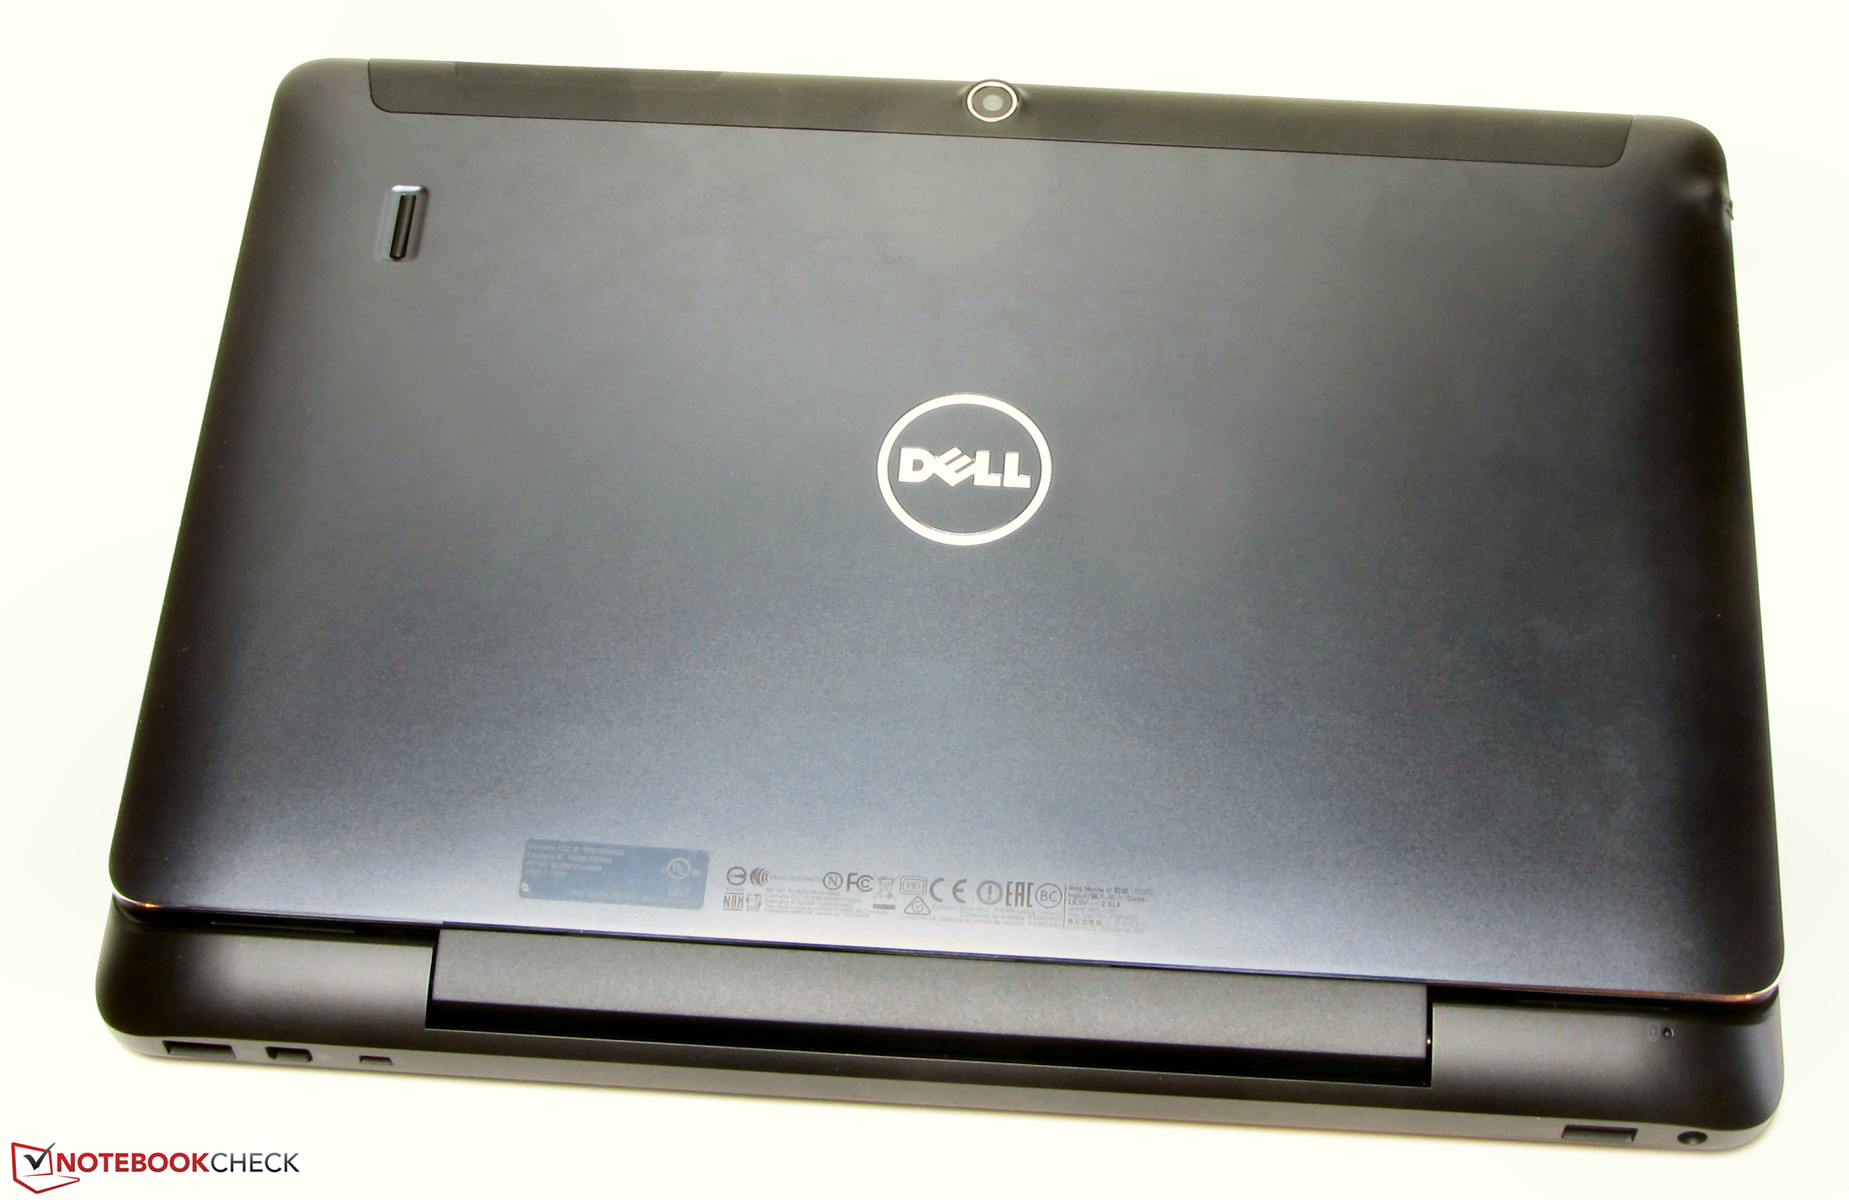 d58f3b8944c2 Dell Latitude 13 7350 Convertible Review - NotebookCheck.net Reviews